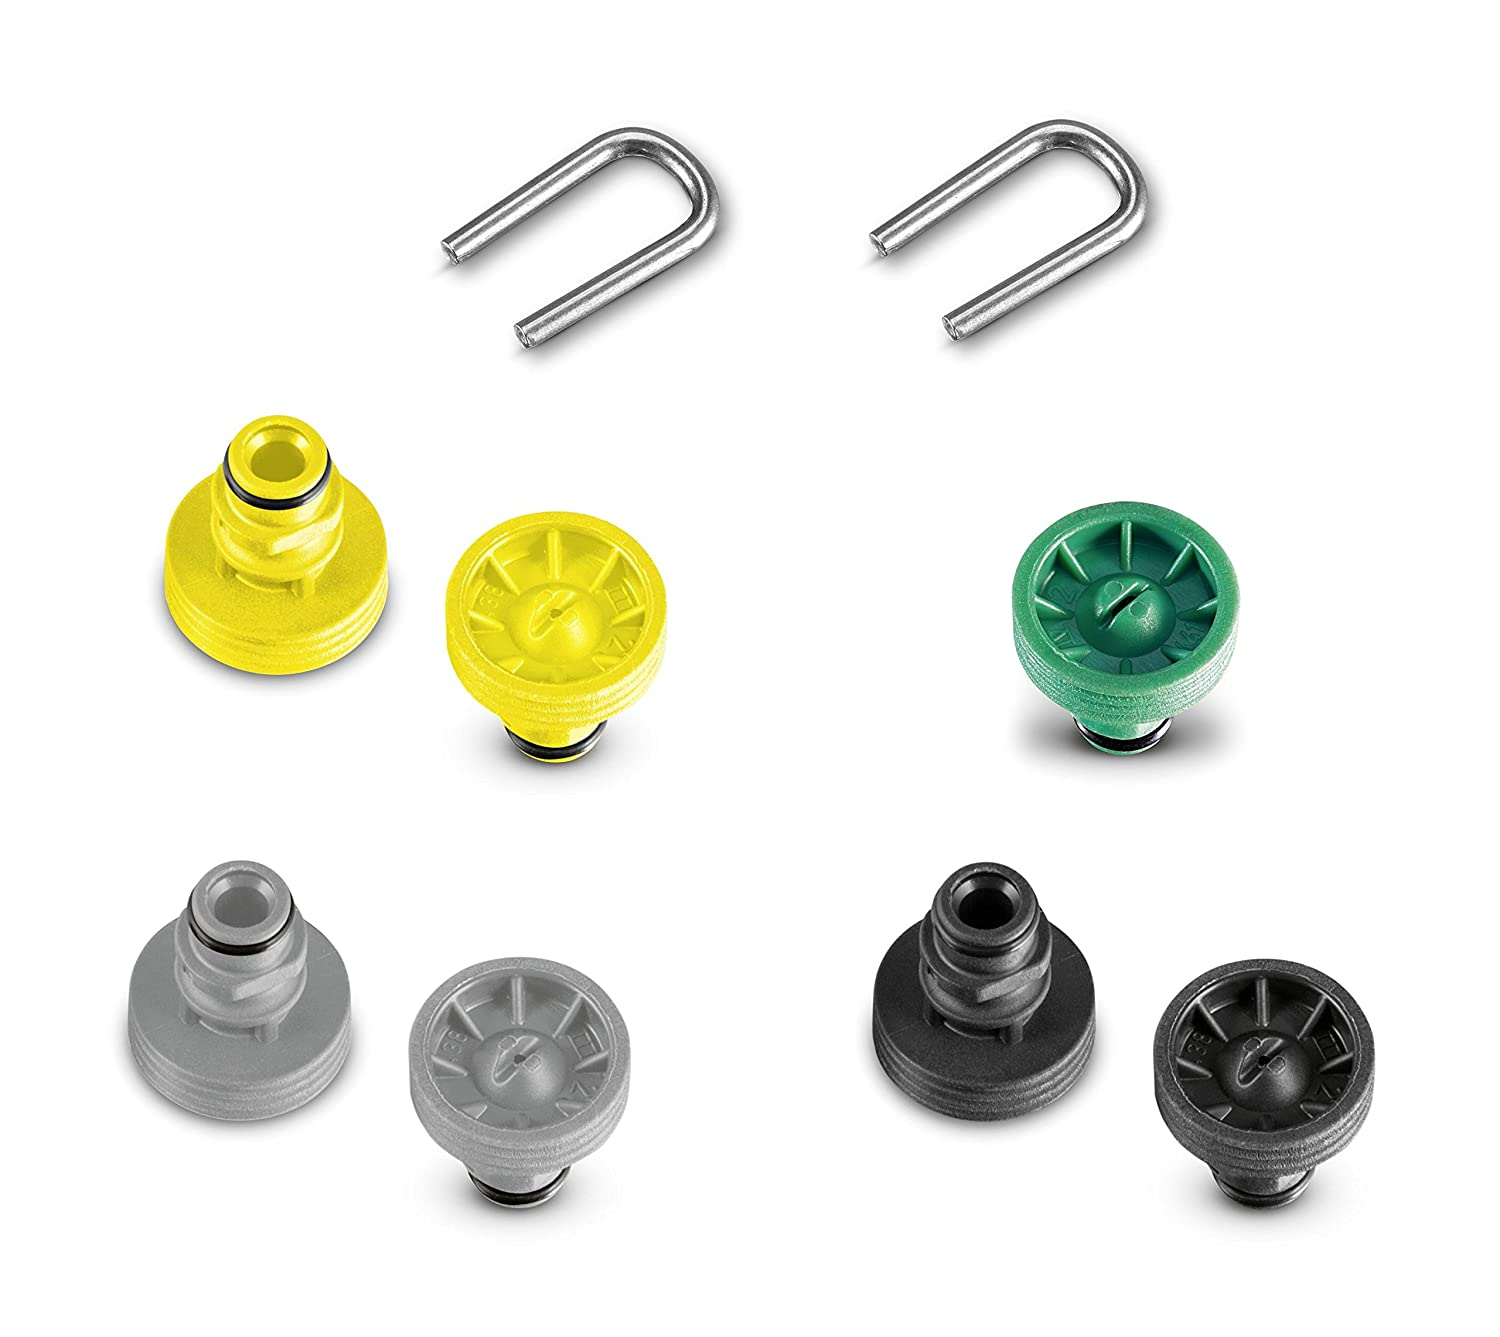 Kärcher 2.643-338.0 Replacement Nozzle Accessories, Yellow